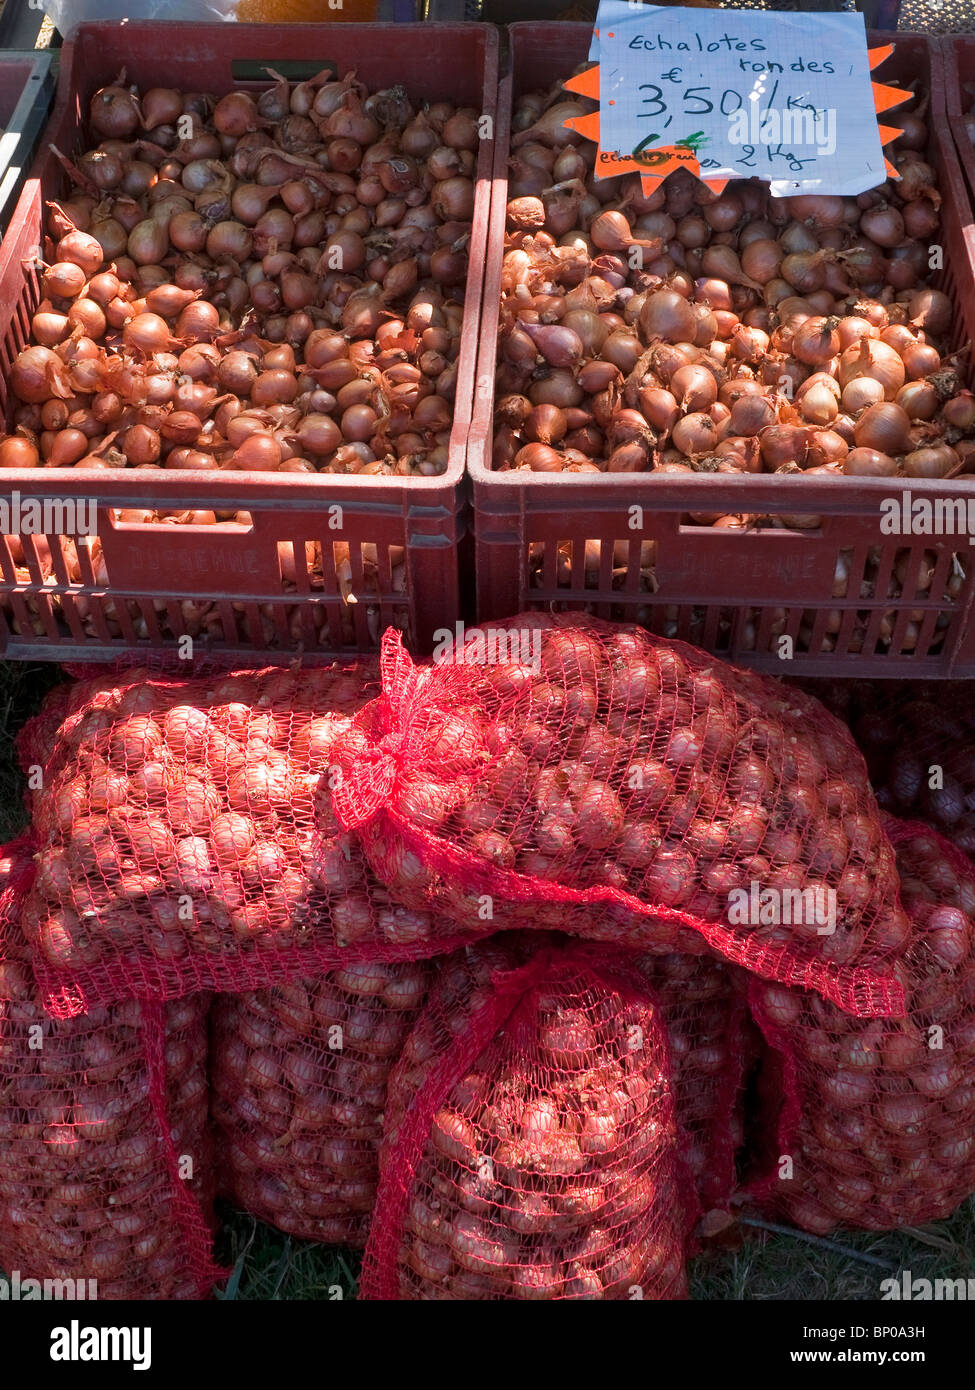 Market stall with sacks of shallots - France. - Stock Image